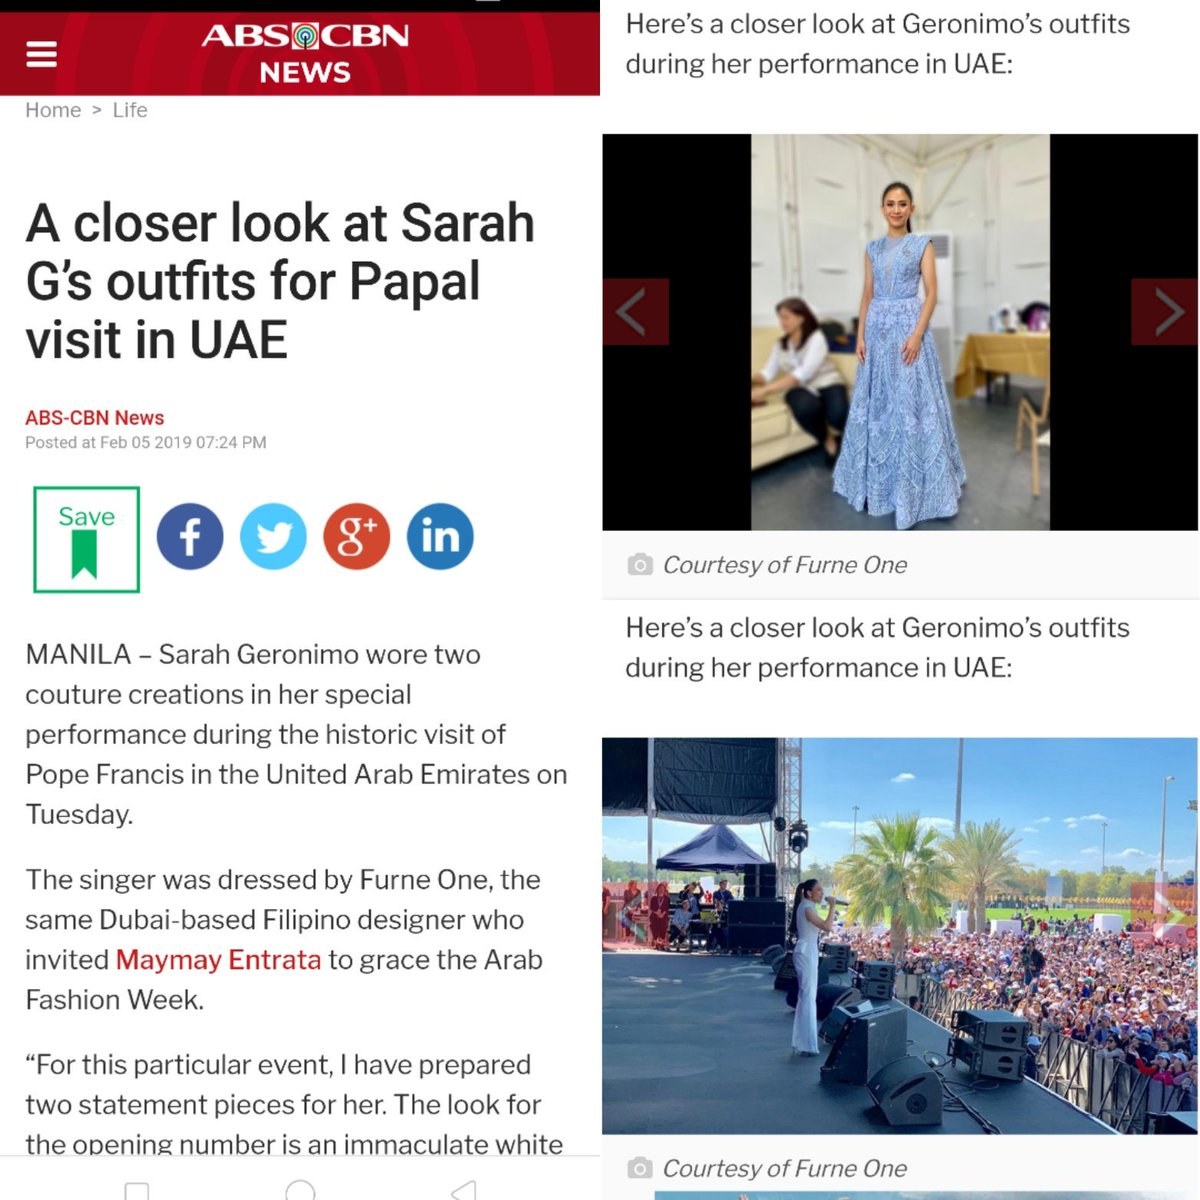 Thank you @ABSCBN ! @JustSarahG in @furneamato1 arranged by @YugenPR  So proud of #SarahGAtThePapalVisitUAE singing inspirational songs after the Holy Mass #PopeFrancisInUAE   https:// news.abs-cbn.com/life/02/05/19/ a-closer-look-at-sarah-gs-outfits-for-papal-visit-in-uae &nbsp; … <br>http://pic.twitter.com/5TxLe4uipD